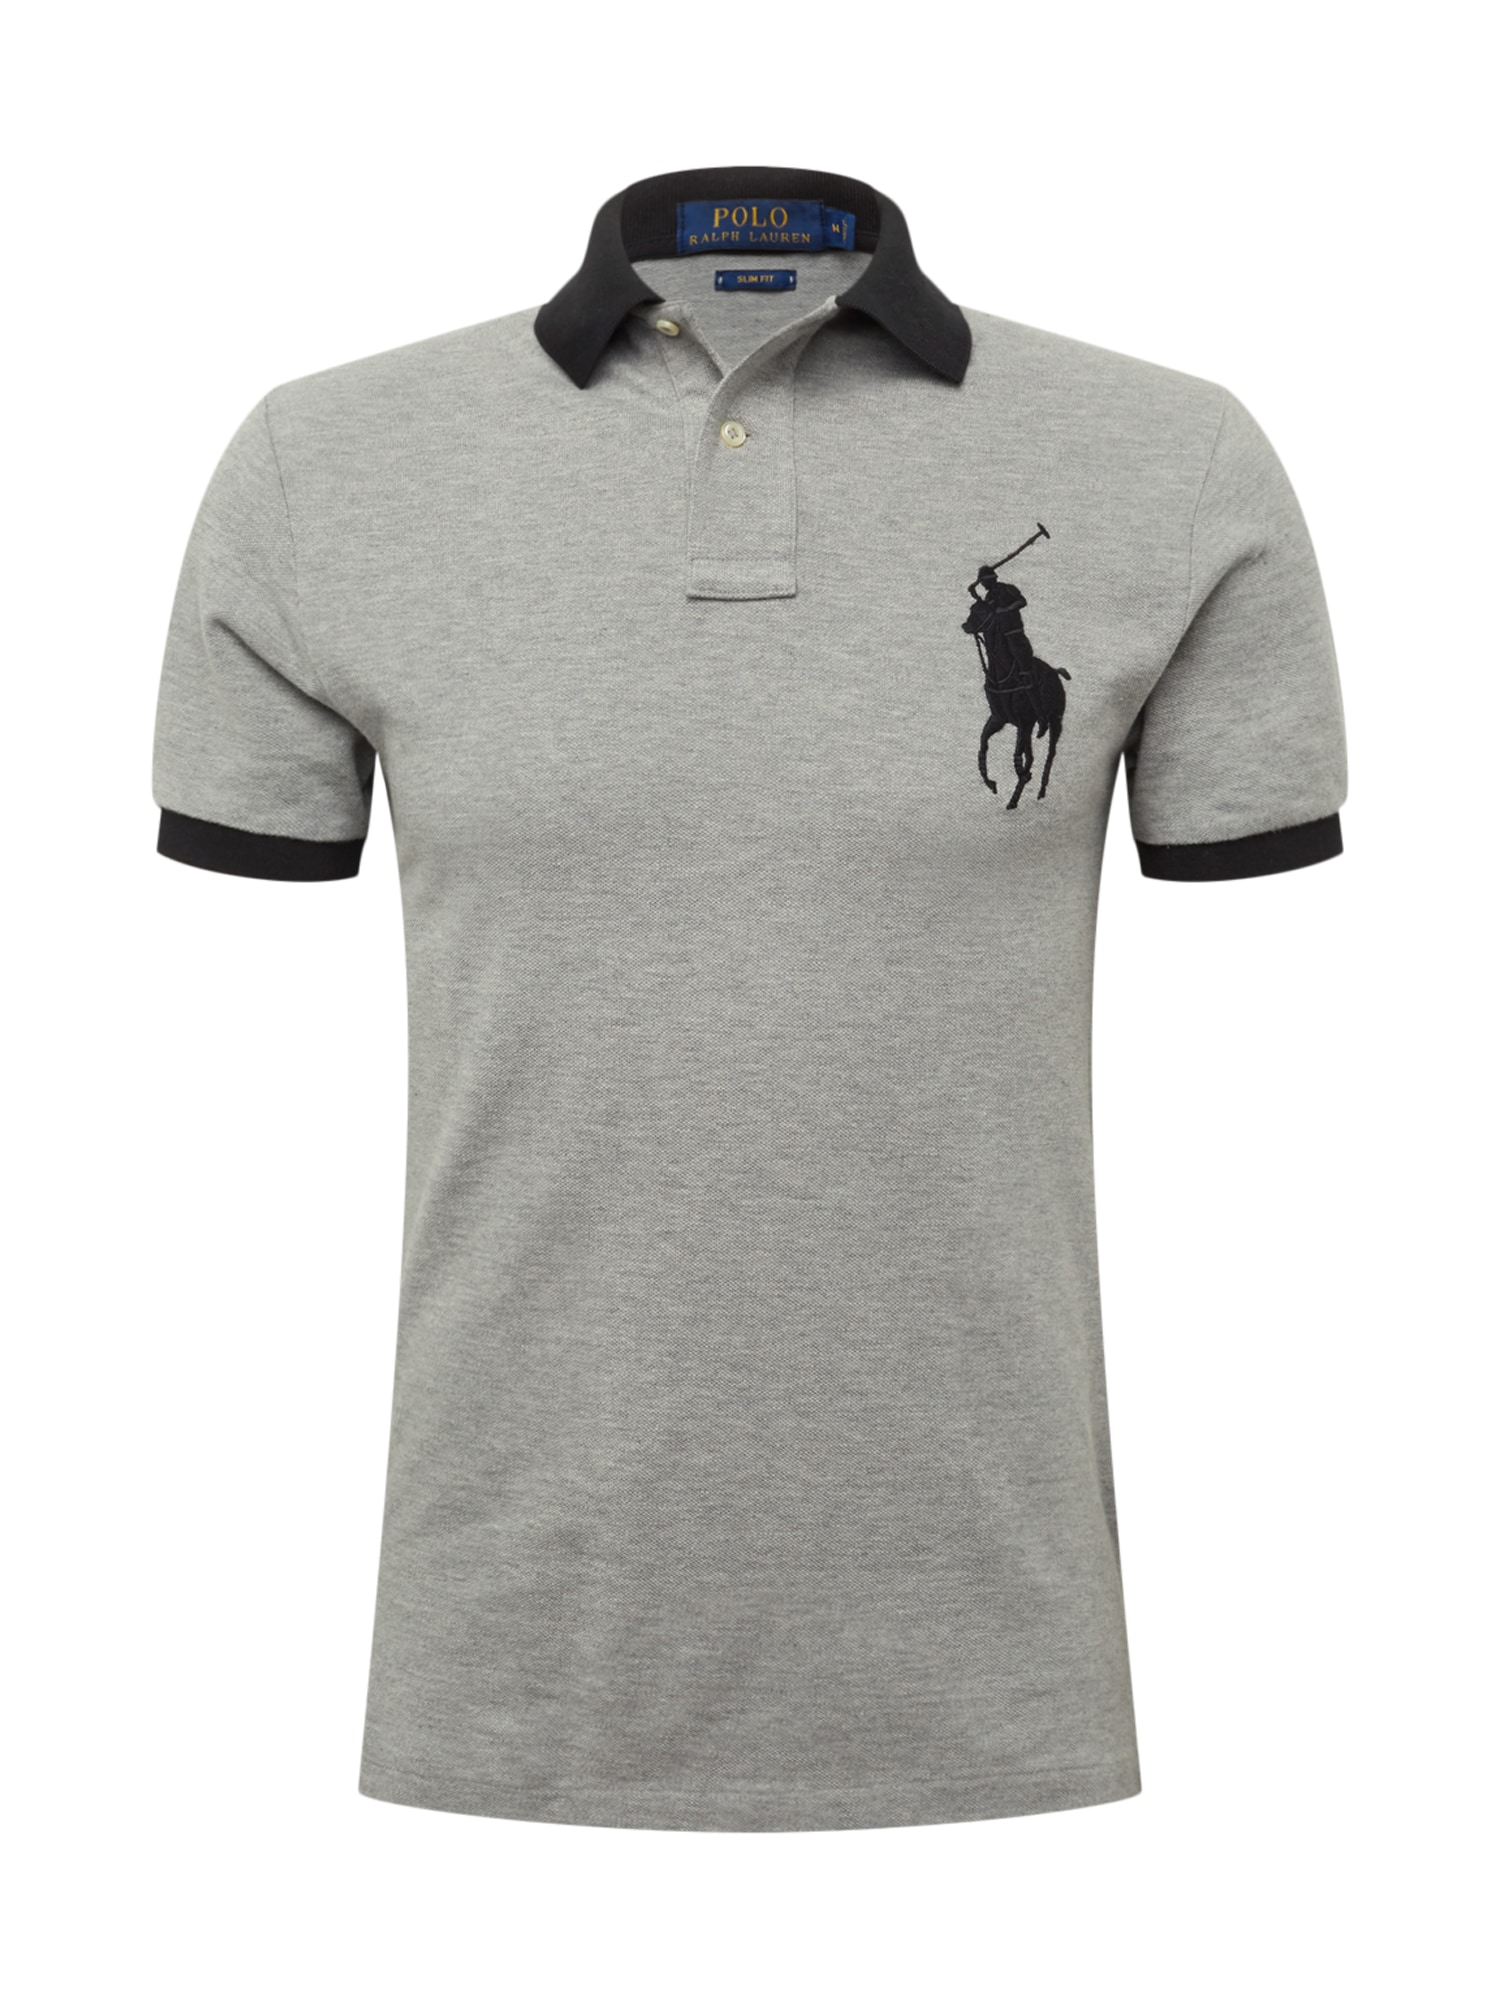 Tričko SS KC SLIM FIT MODEL 1 šedá POLO RALPH LAUREN